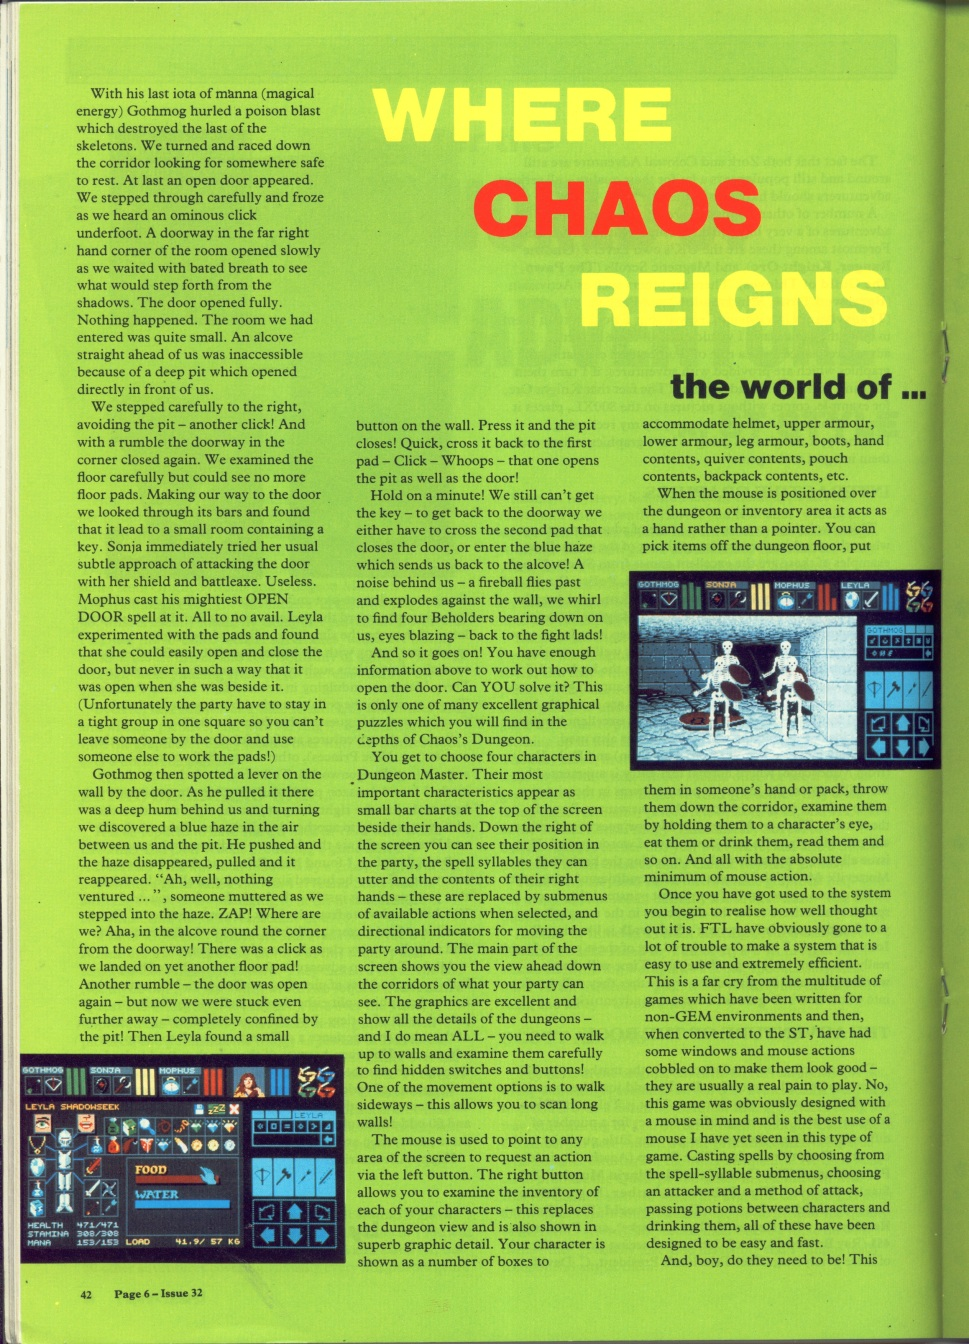 Dungeon Master for Atari ST Review published in British magazine 'Page 6', Issue #34 July-August 1988, Page 42